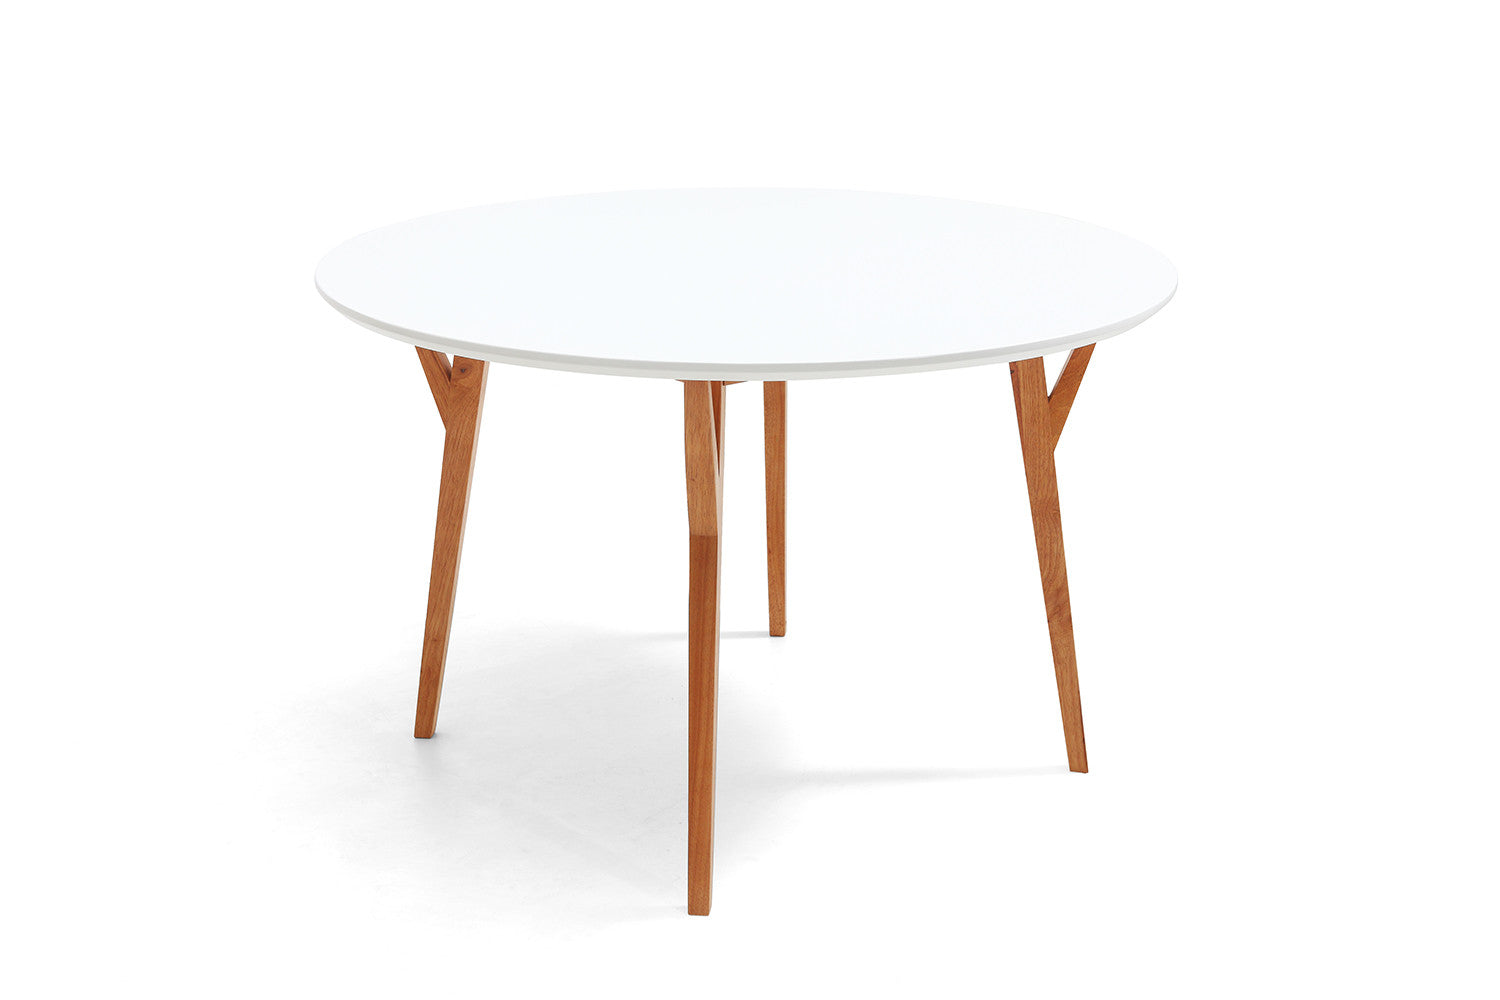 Table de salle manger ronde design scandinave moesa - Table en bois blanche ...